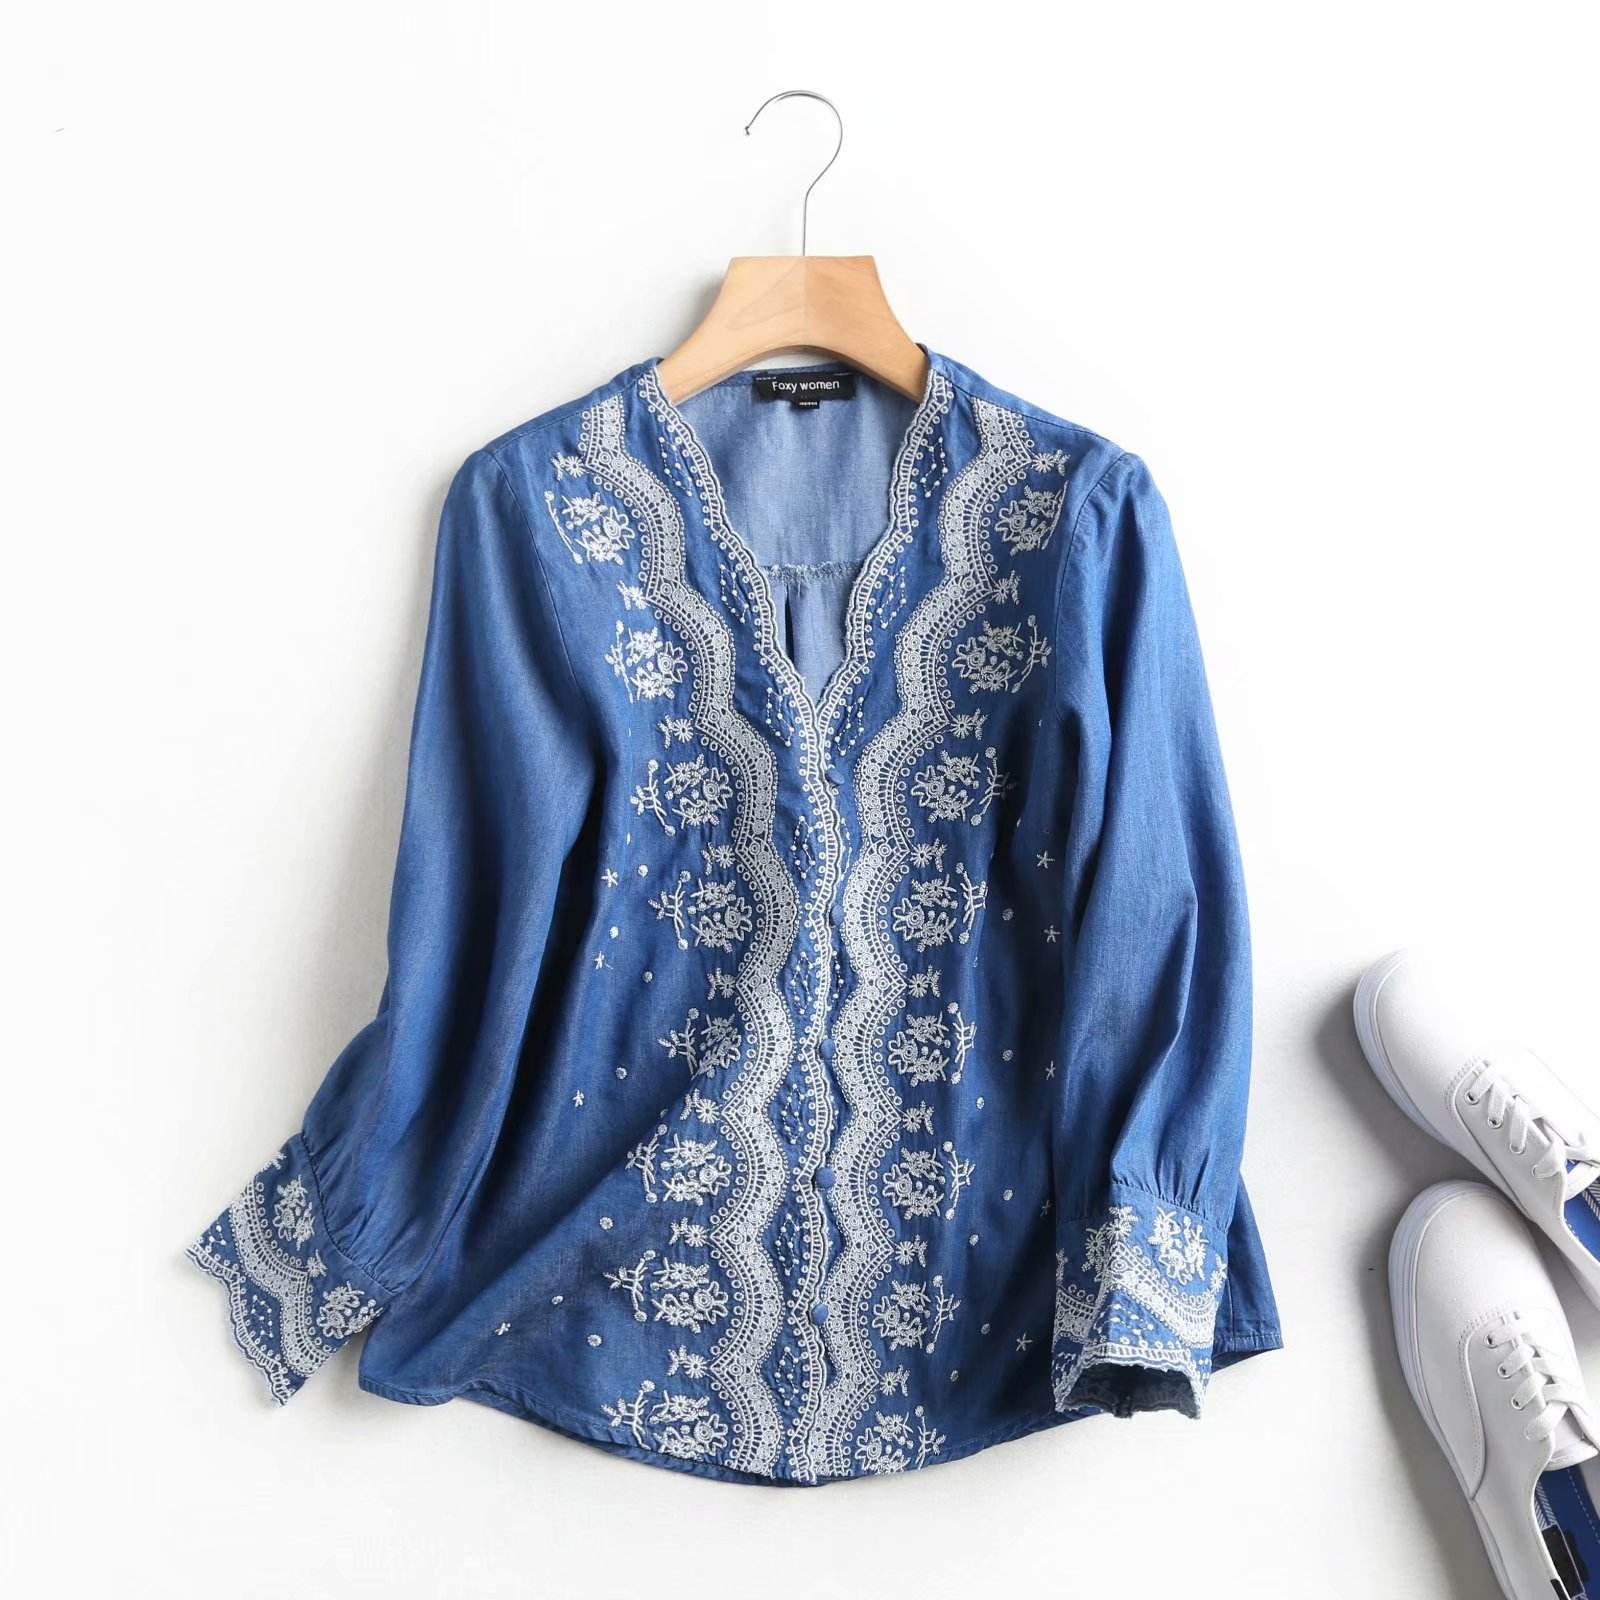 2020 spring new Tencel denim national style artistic temperament shirt women